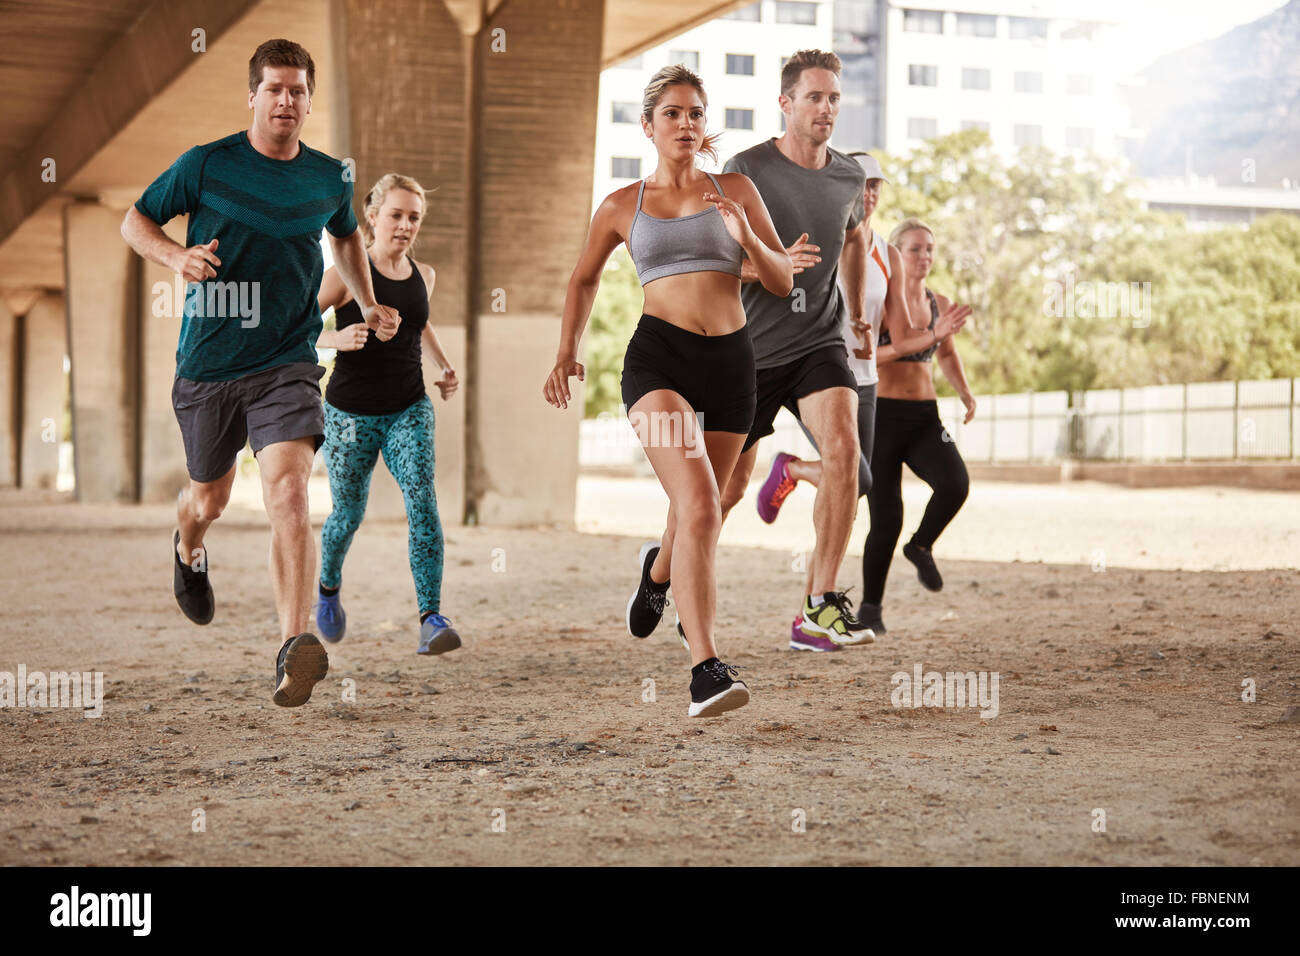 Determined  group of young people running together in city. Running club members training together. - Stock Image